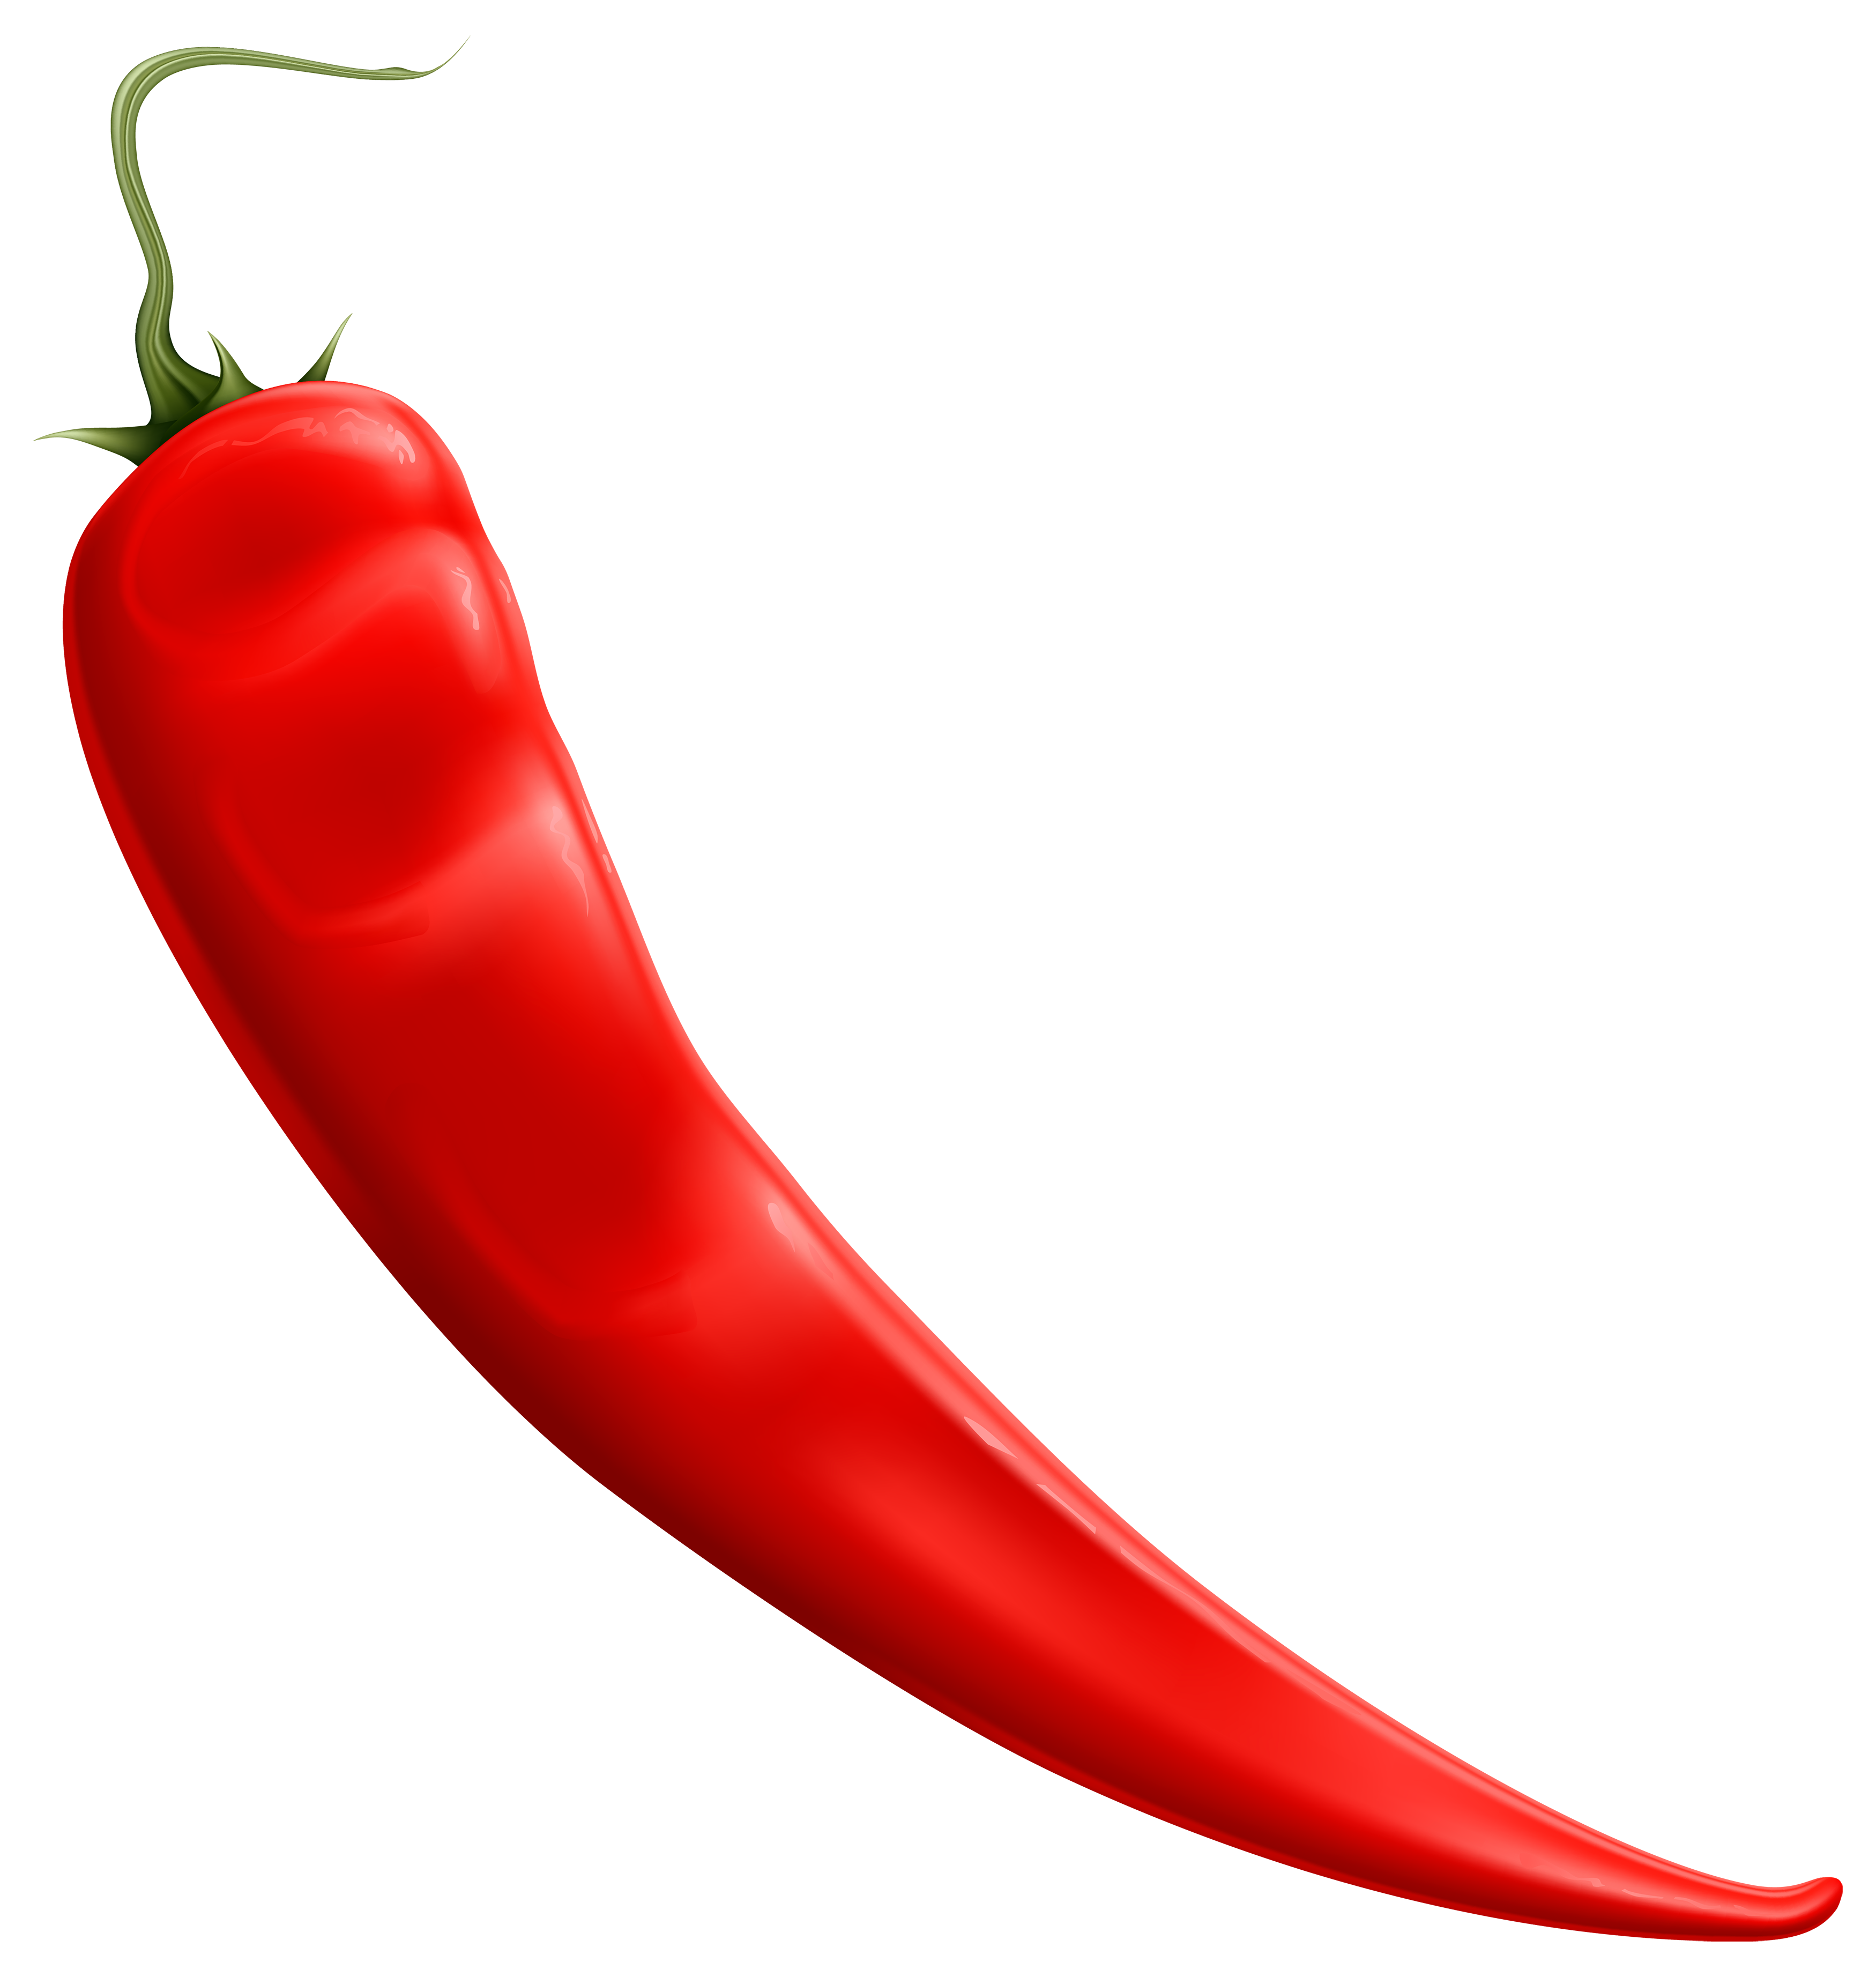 Red Chili Pepper PNG Clipart - Best WEB Clipart